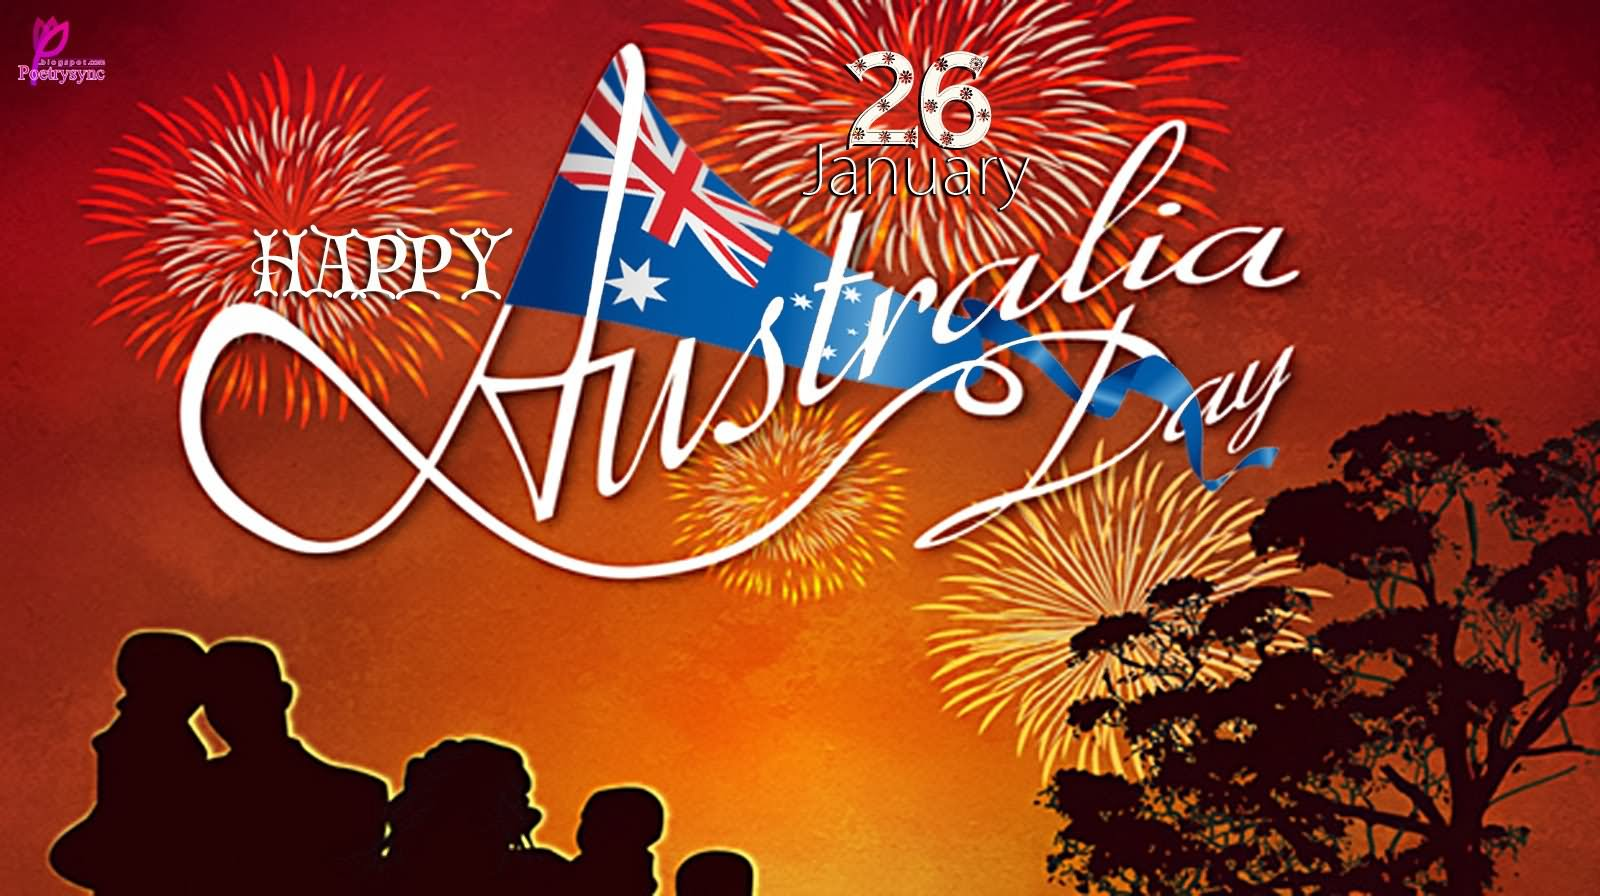 Happy Easter Wallpaper Quotes 15 Wonderful Australia Day Fireworks Pictures